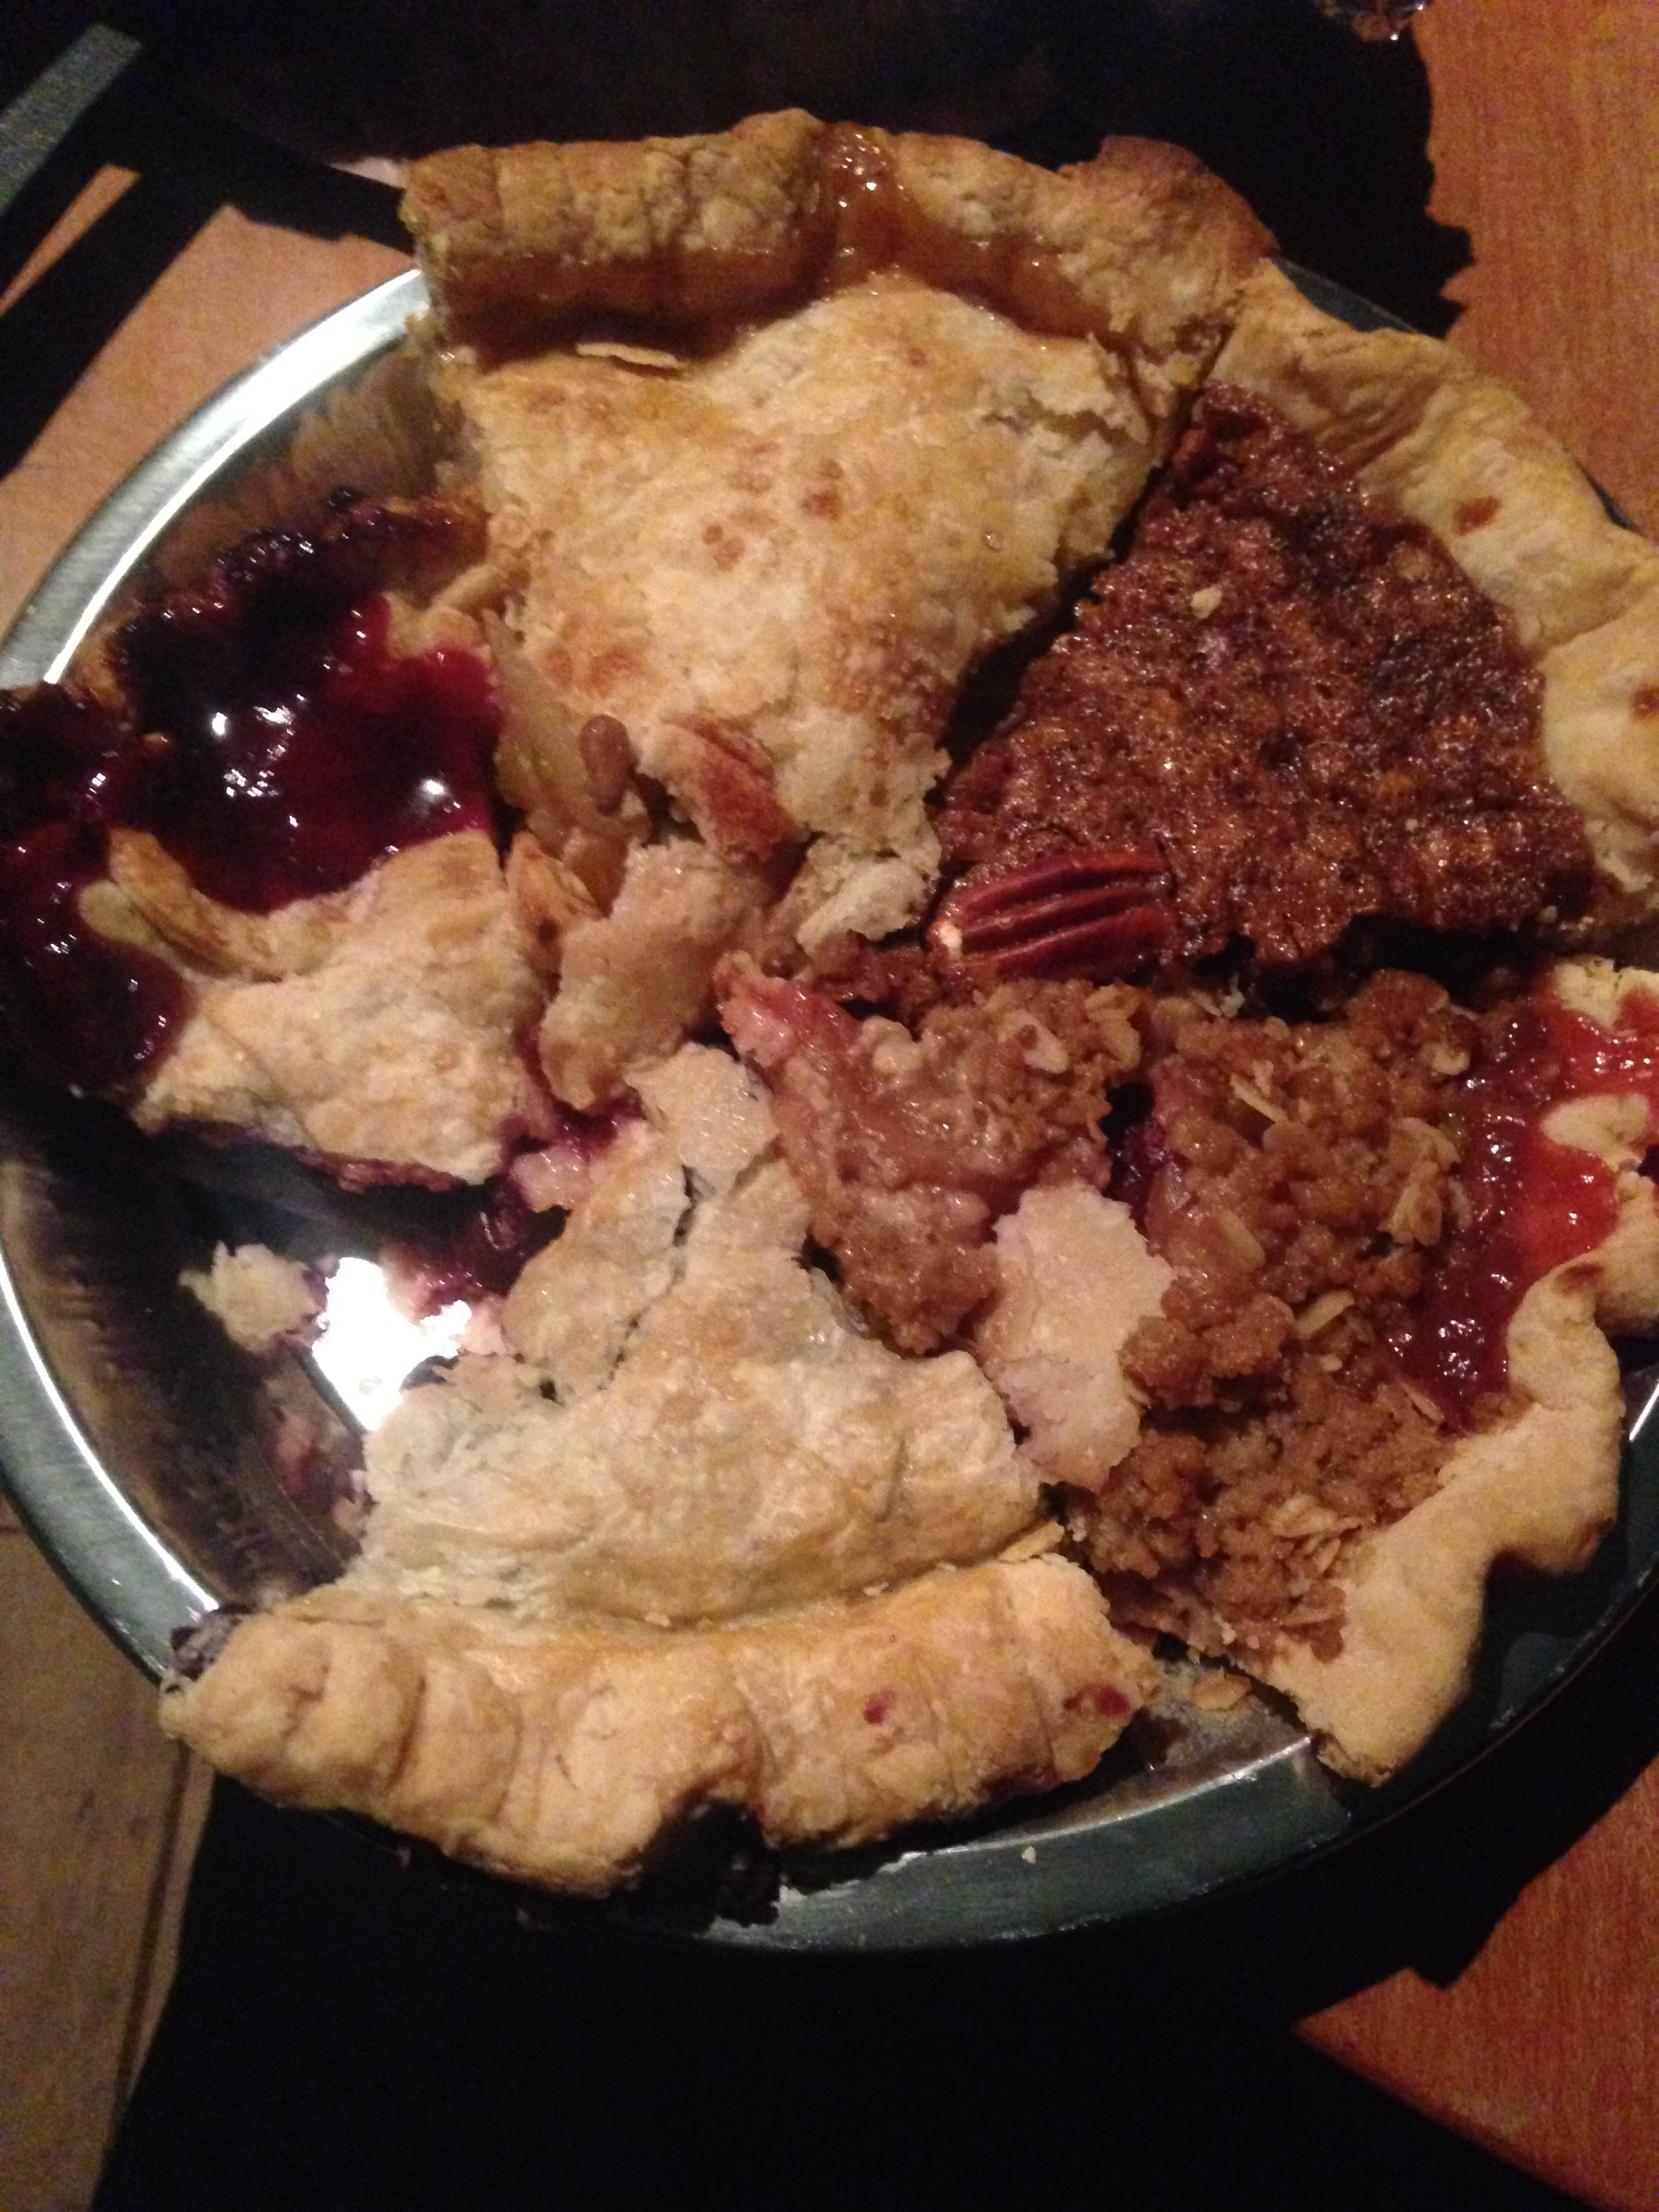 The best pie I have ever!!!